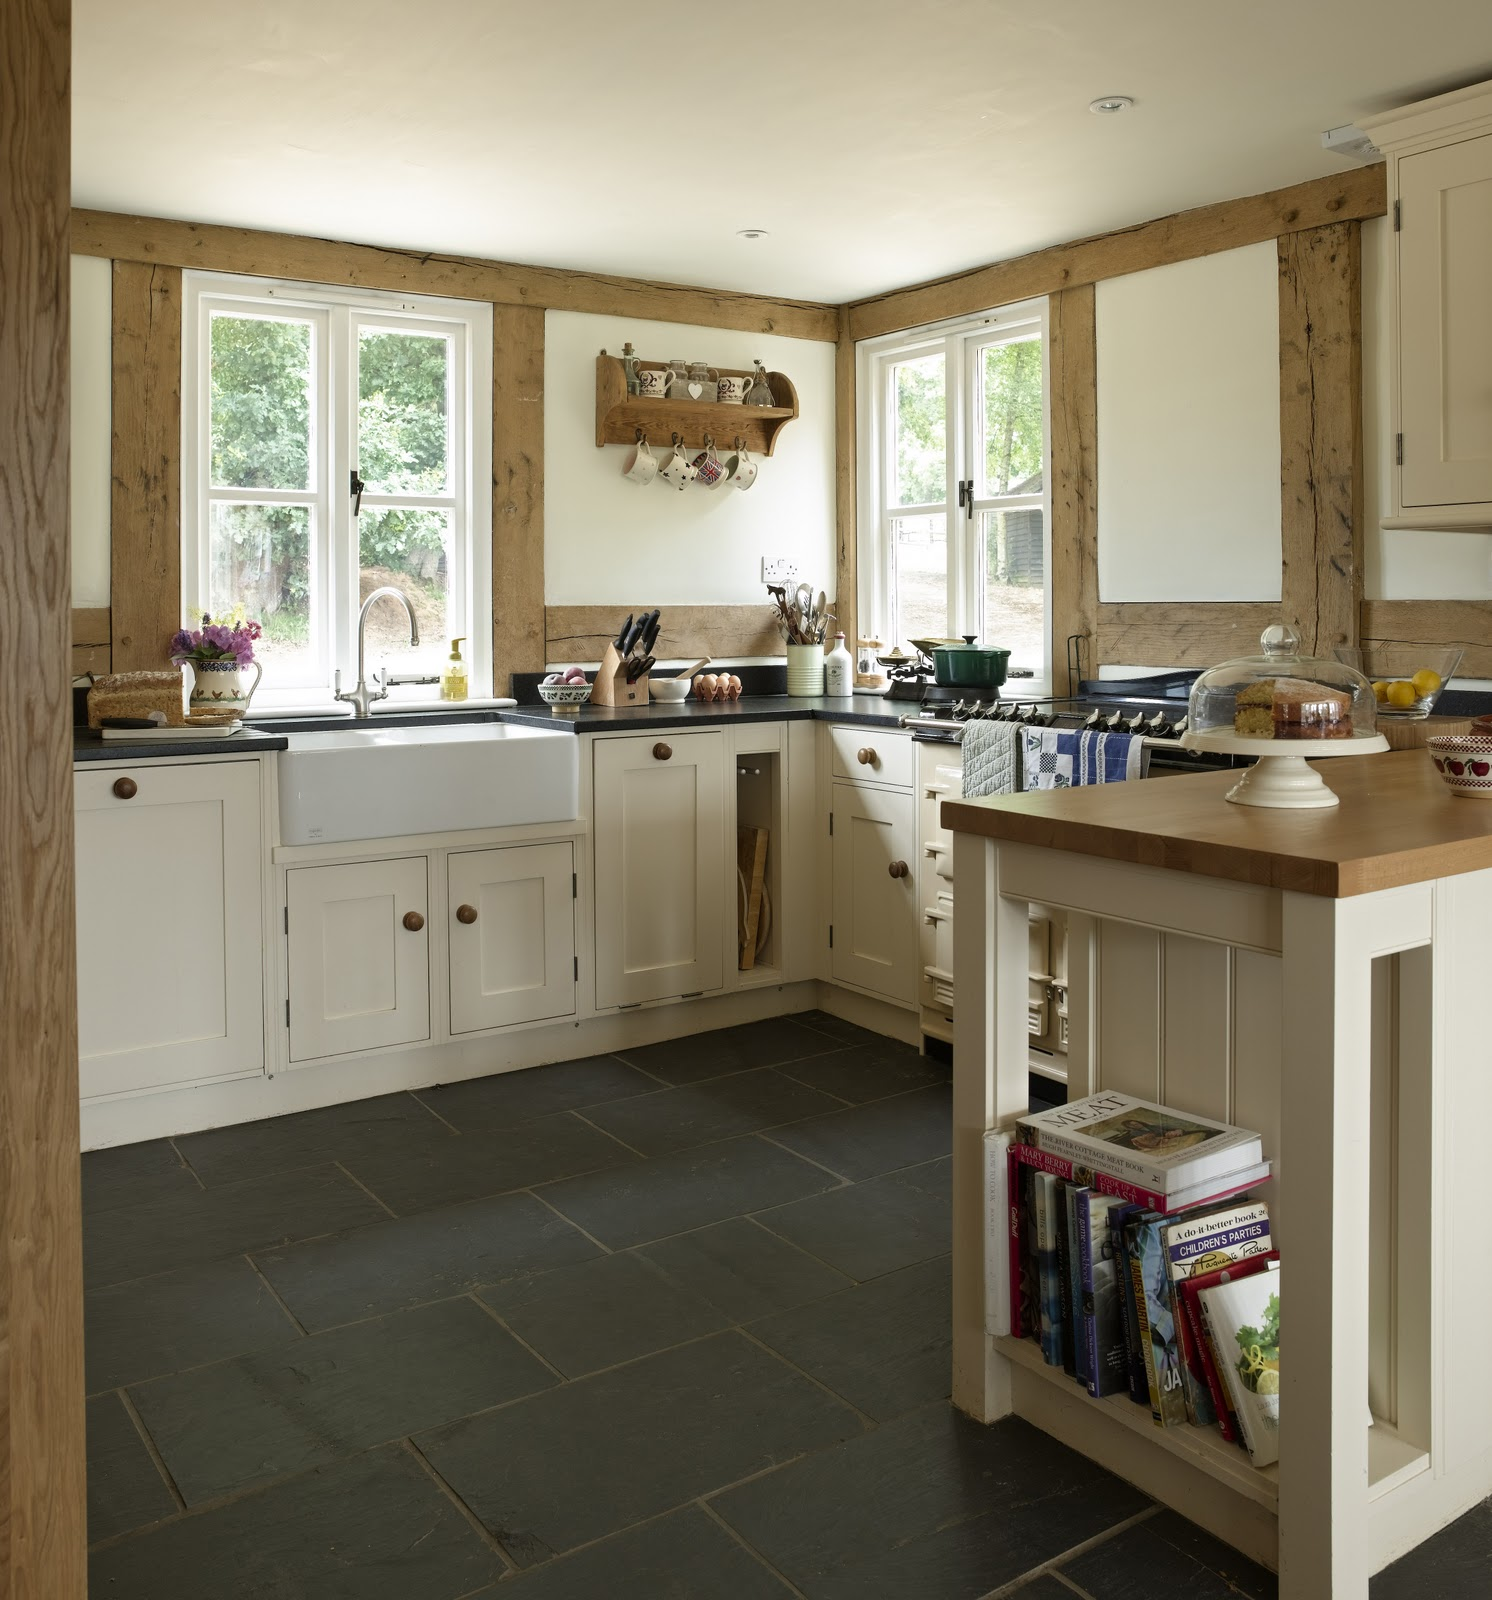 Cottage Kitchen Photos: From Little Acorns.........: A Lovely Oak Framed Cottage